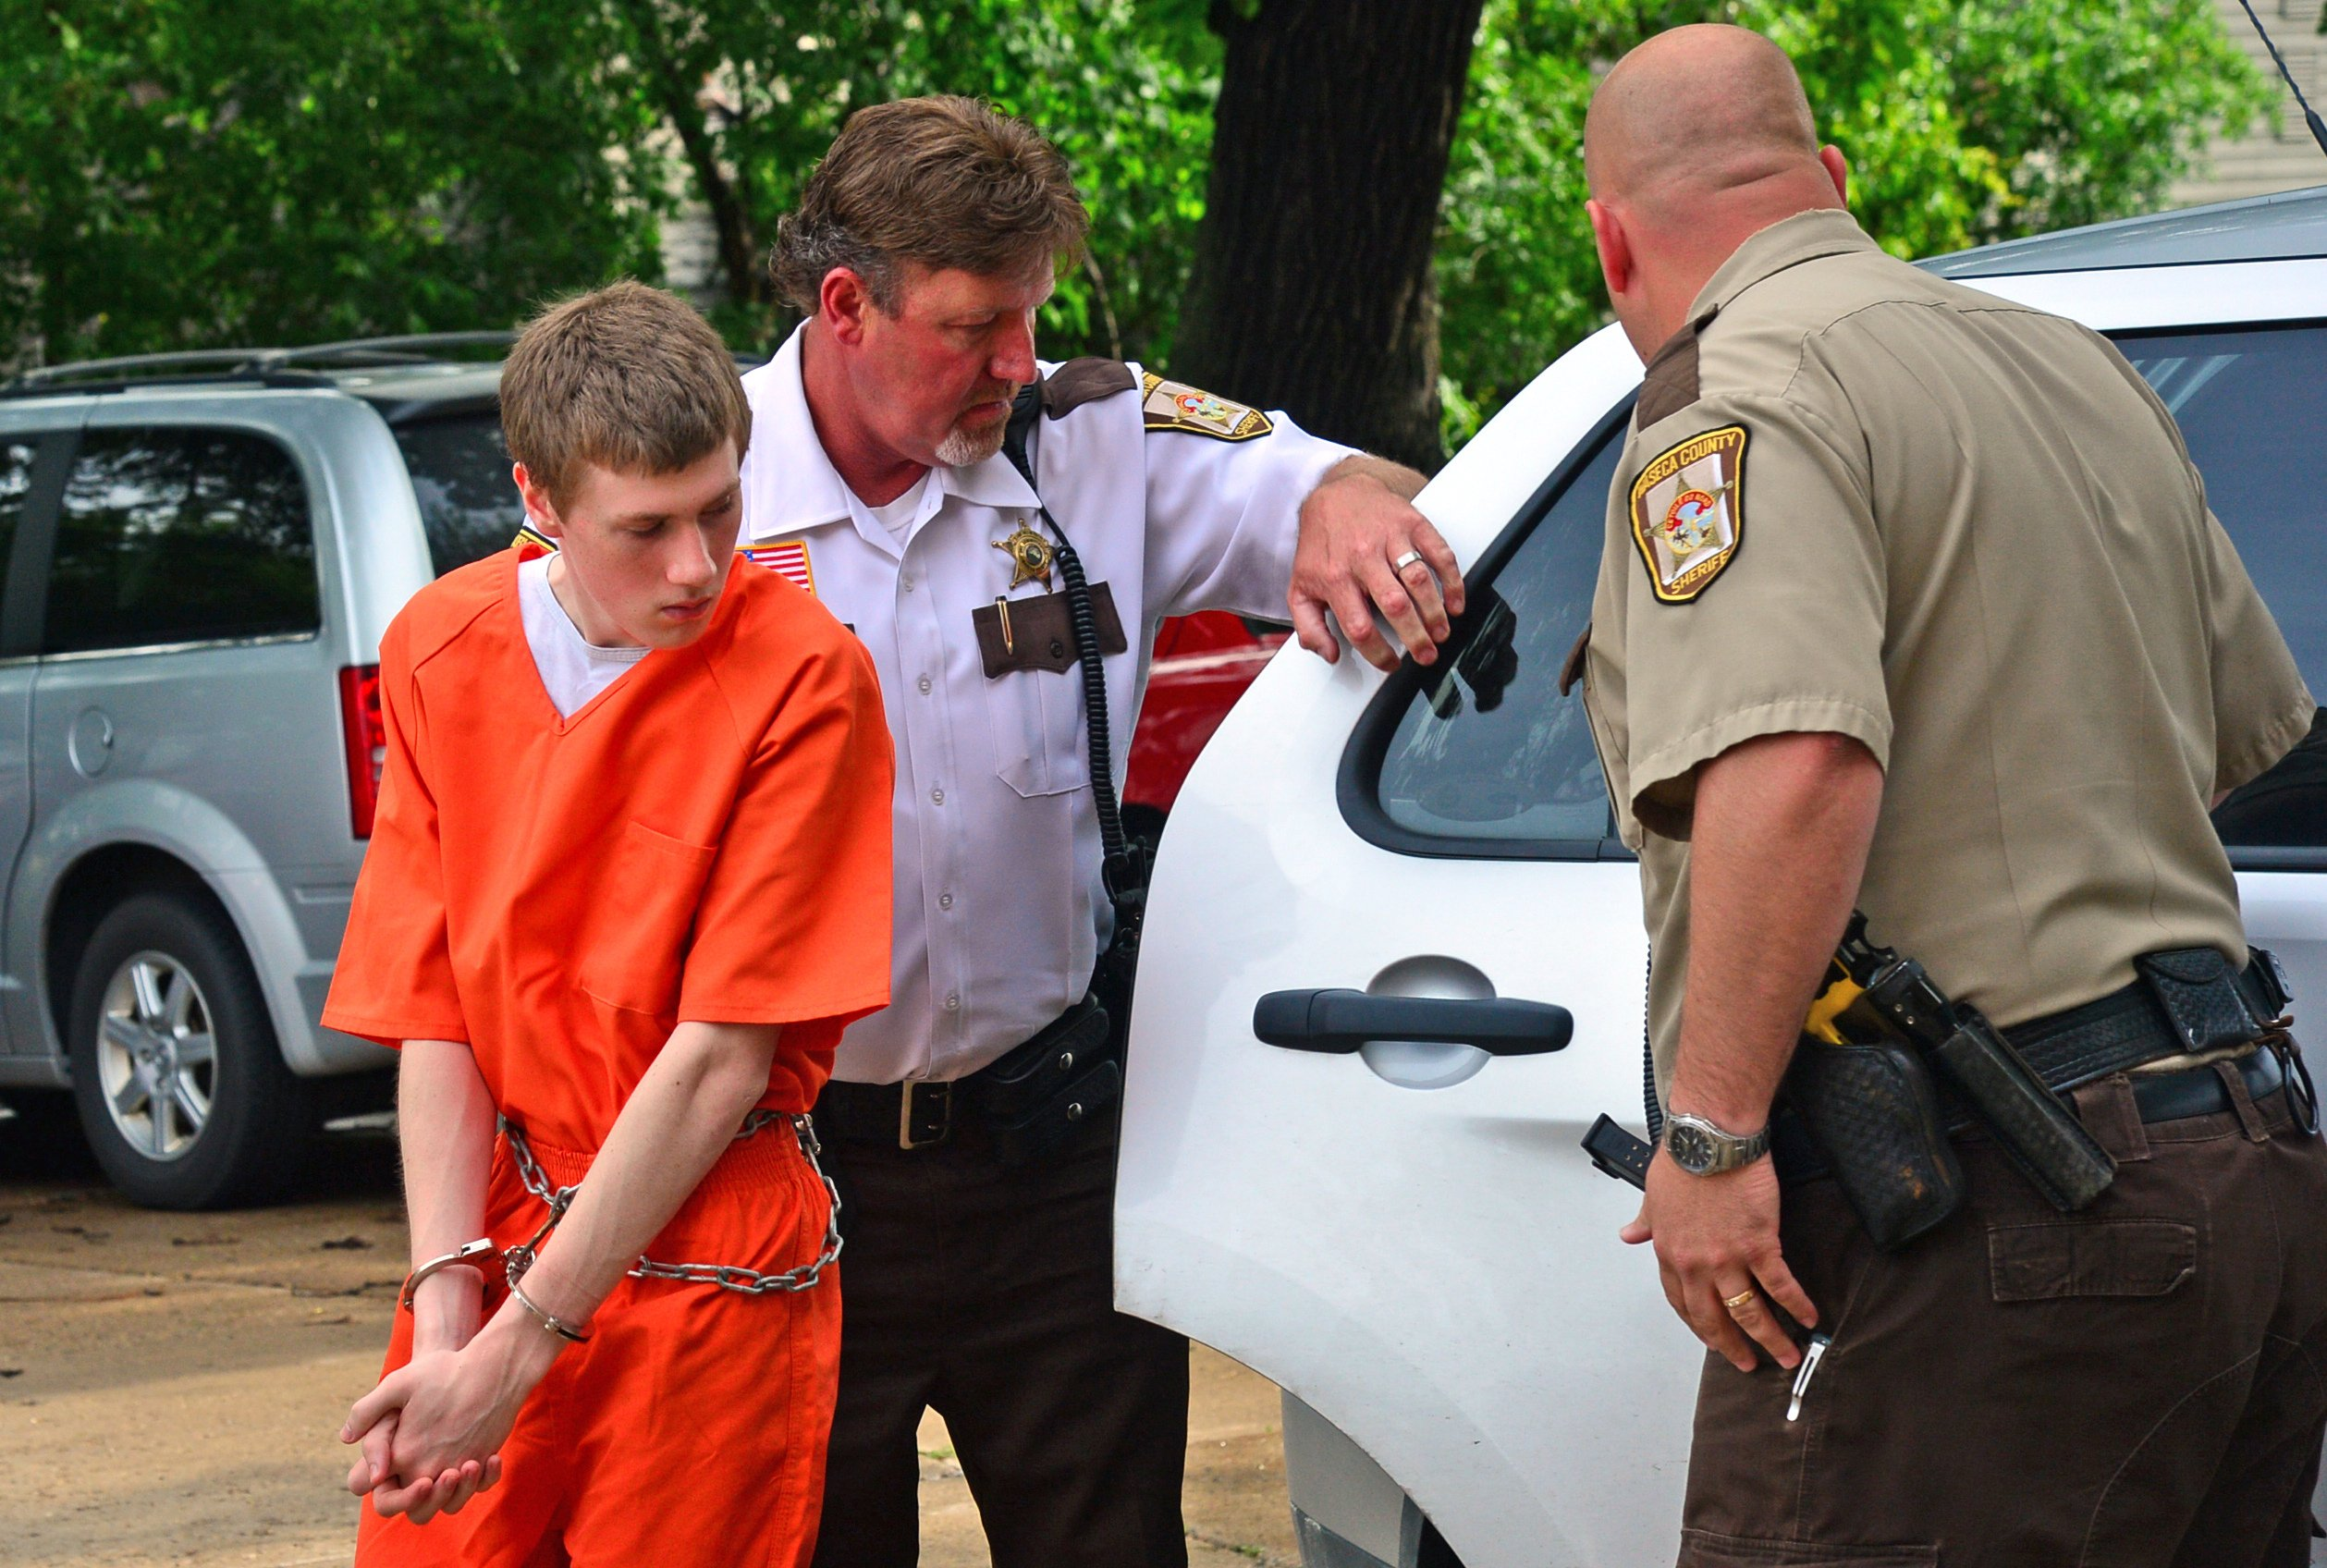 John LaDue, accused of planning an attack on his school was scheduled to make an appearance in court, Waseca County Sheriff's  deputies walked him into the Waseca County Court for a  morning hearing in Waseca, Minn., June 18, 2014.